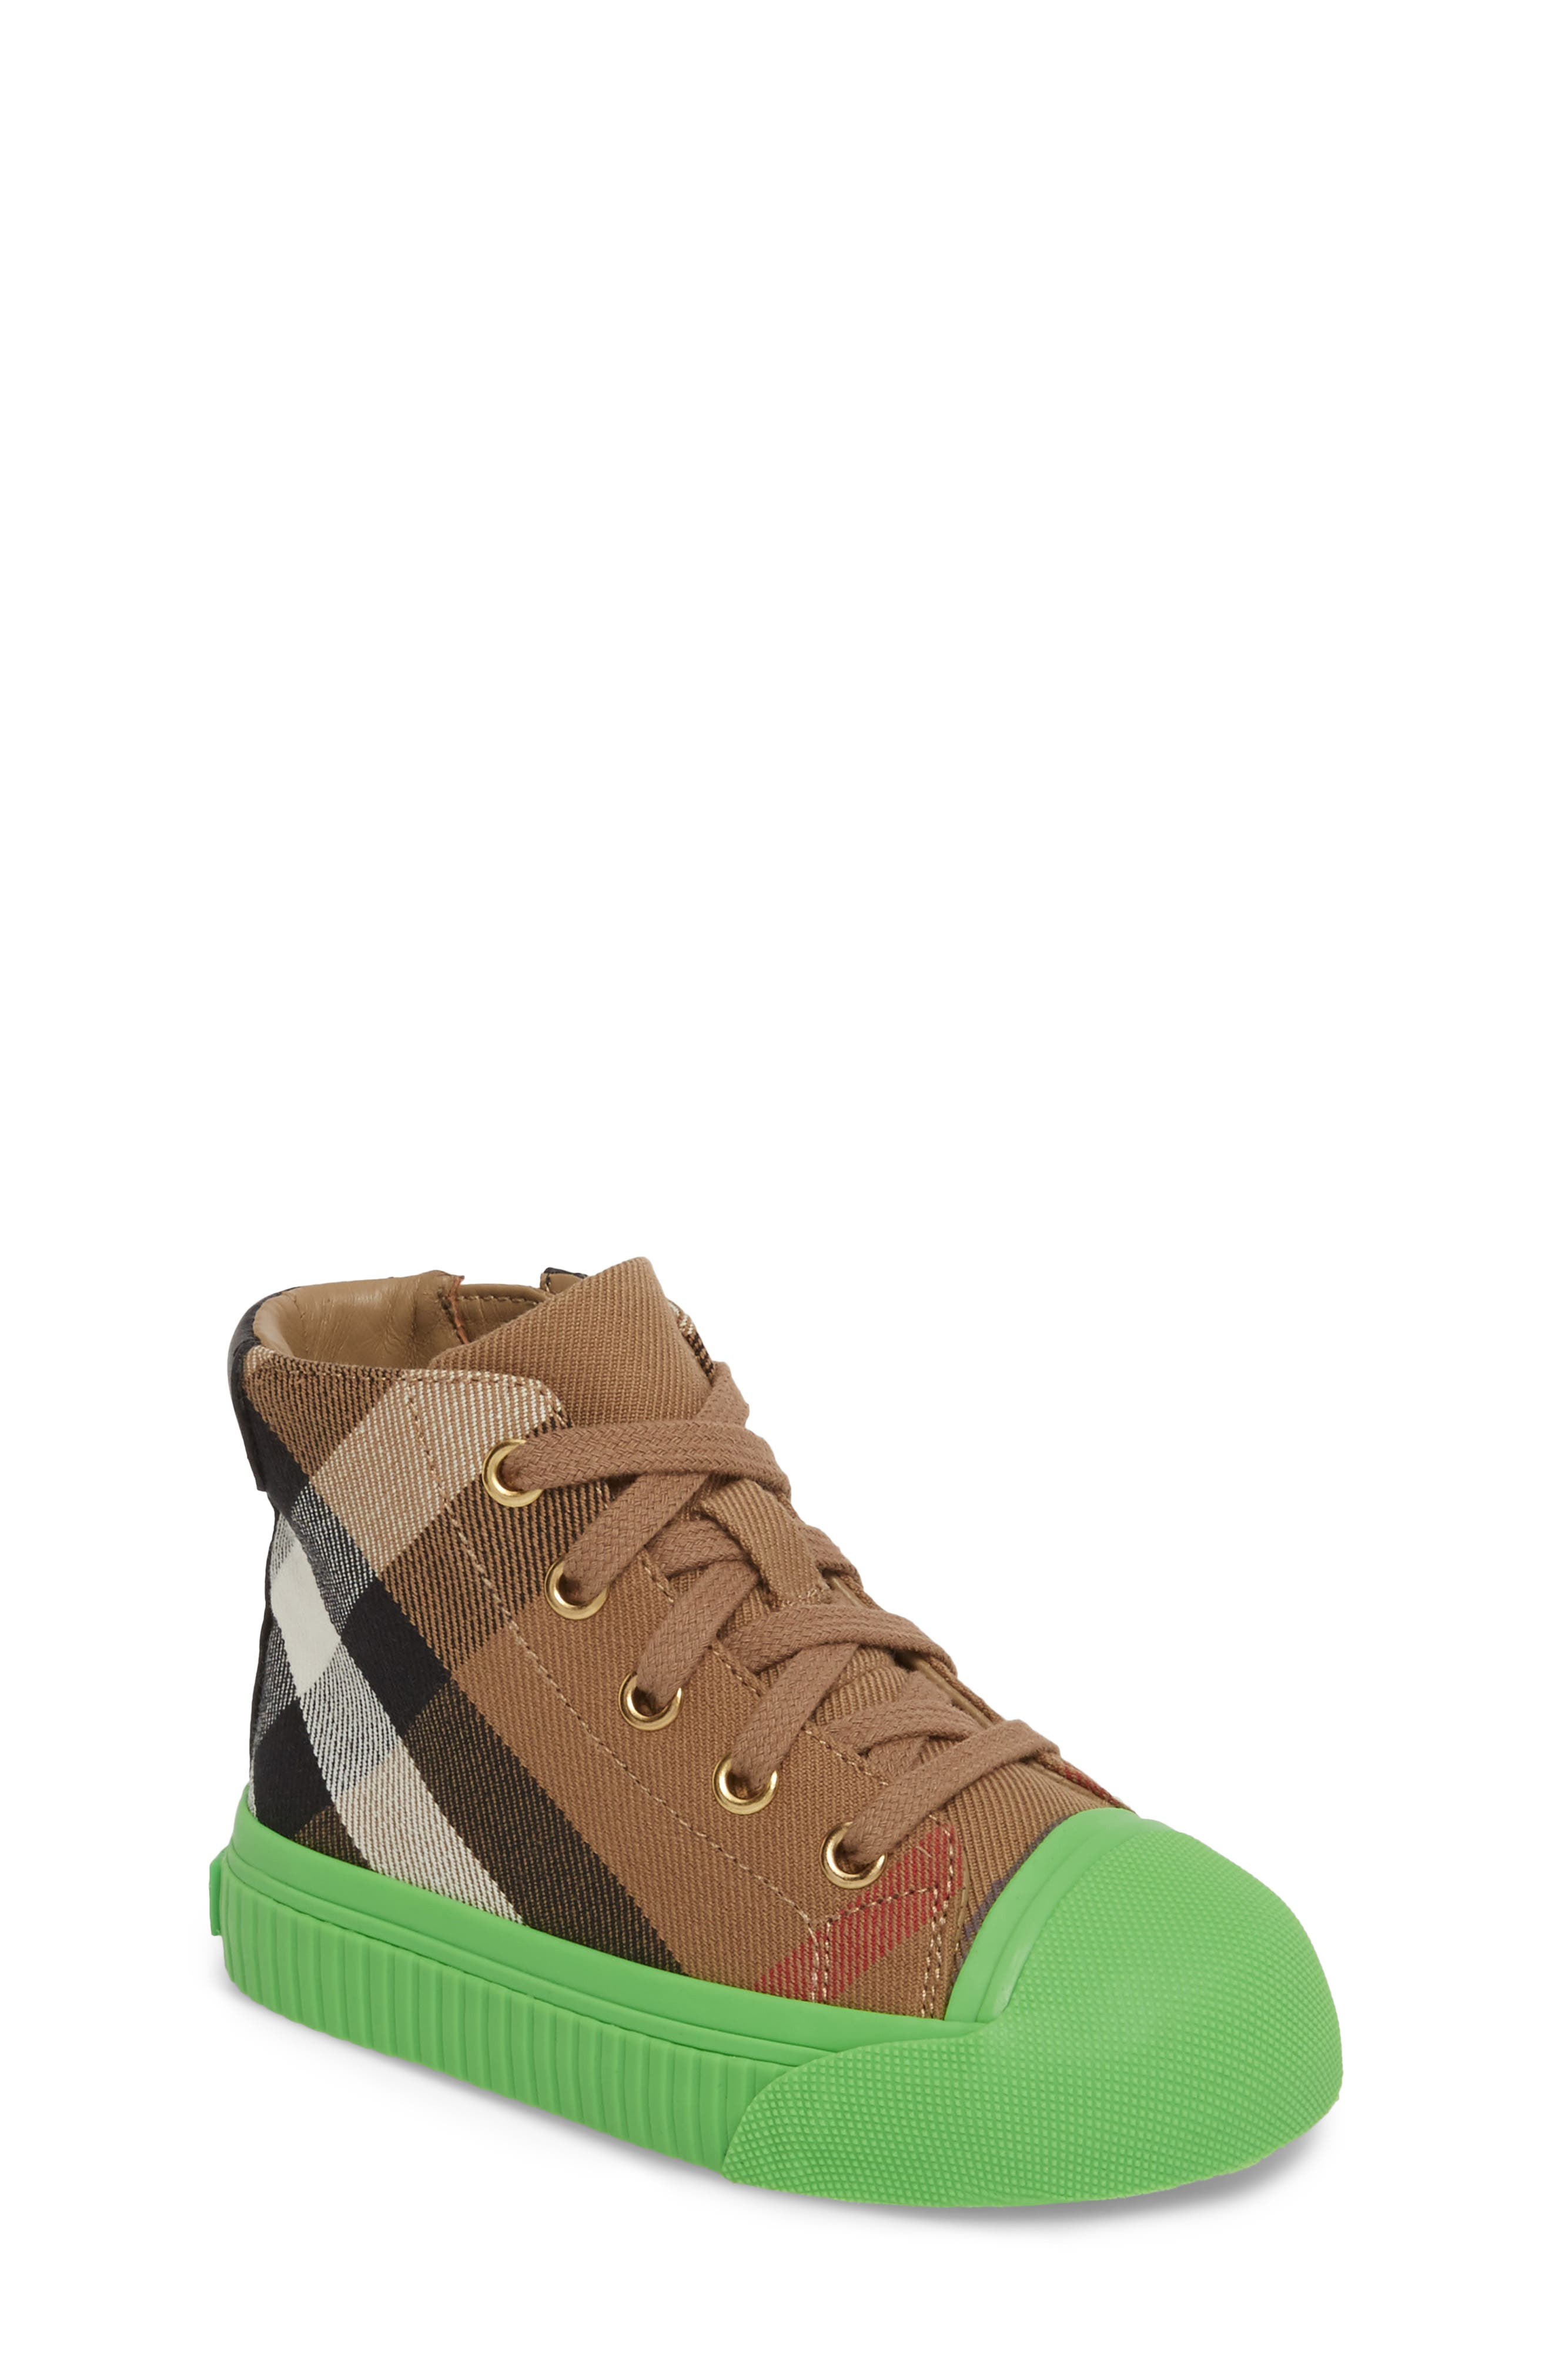 Burberry Belford High Top Sneaker (Walker, Toddler & Little Kid)